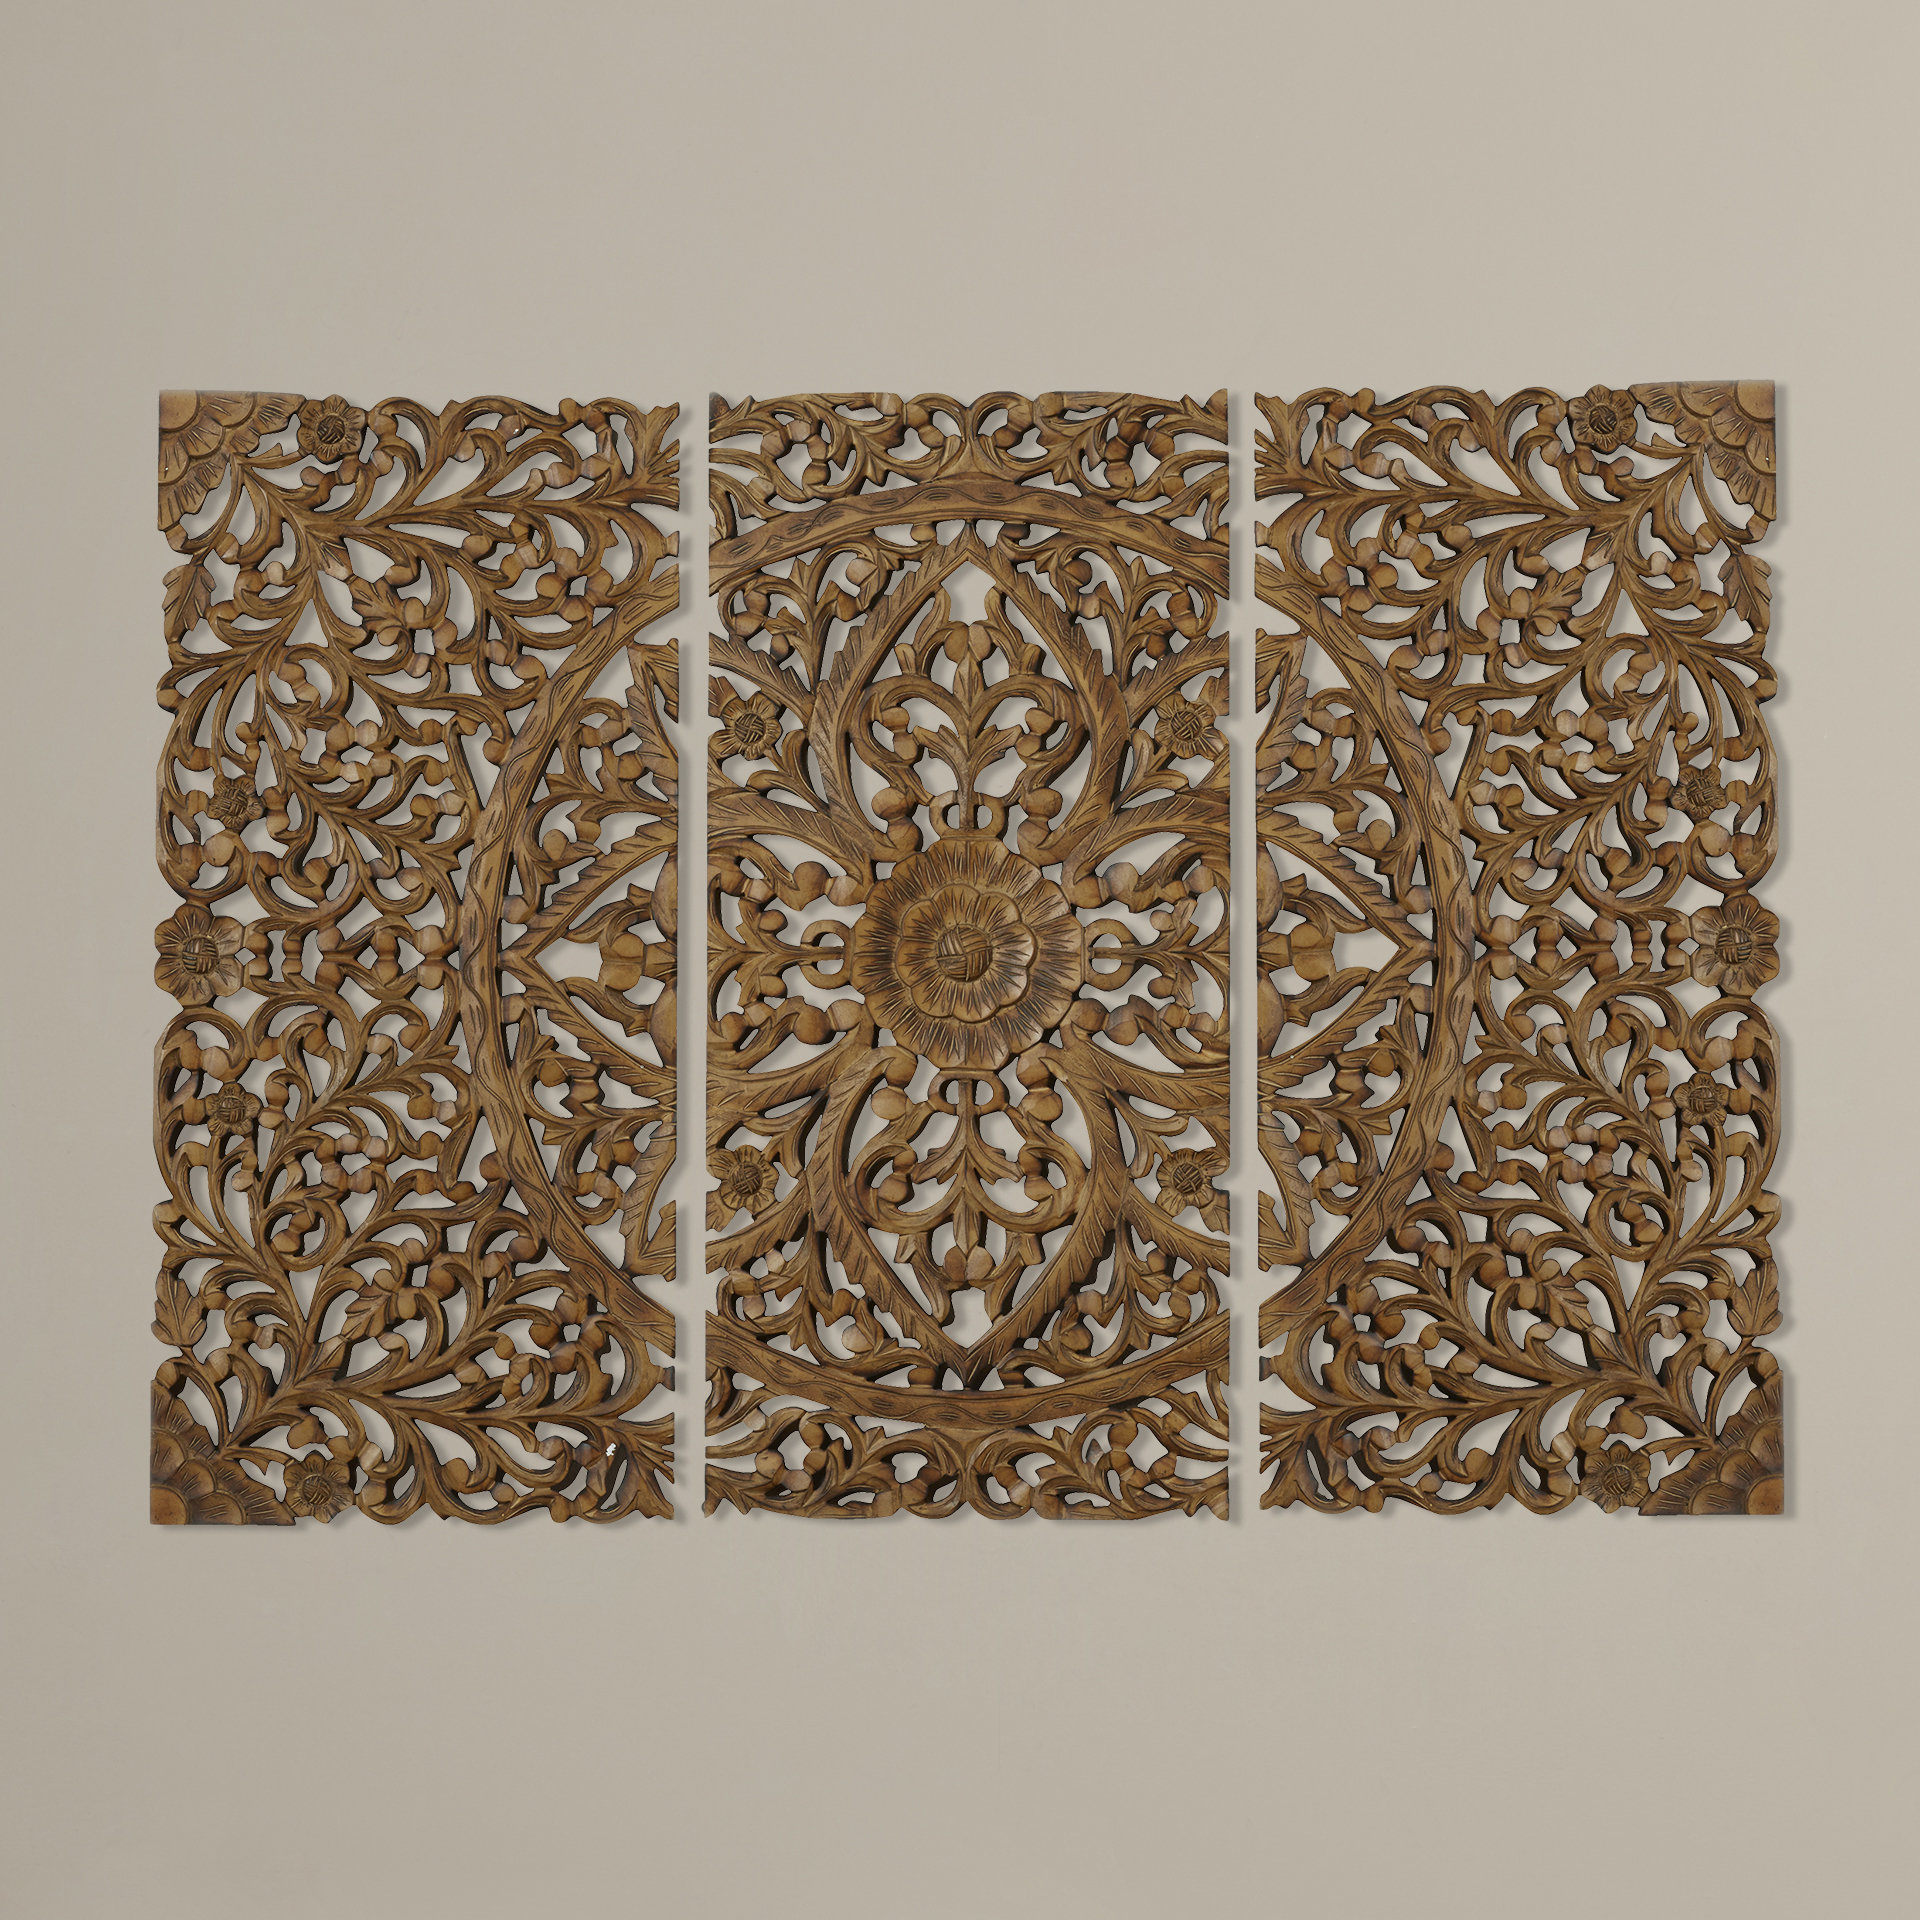 3 Panel Wall Decor | Wayfair with regard to 3 Piece Magnolia Brown Panel Wall Decor Sets (Image 1 of 30)